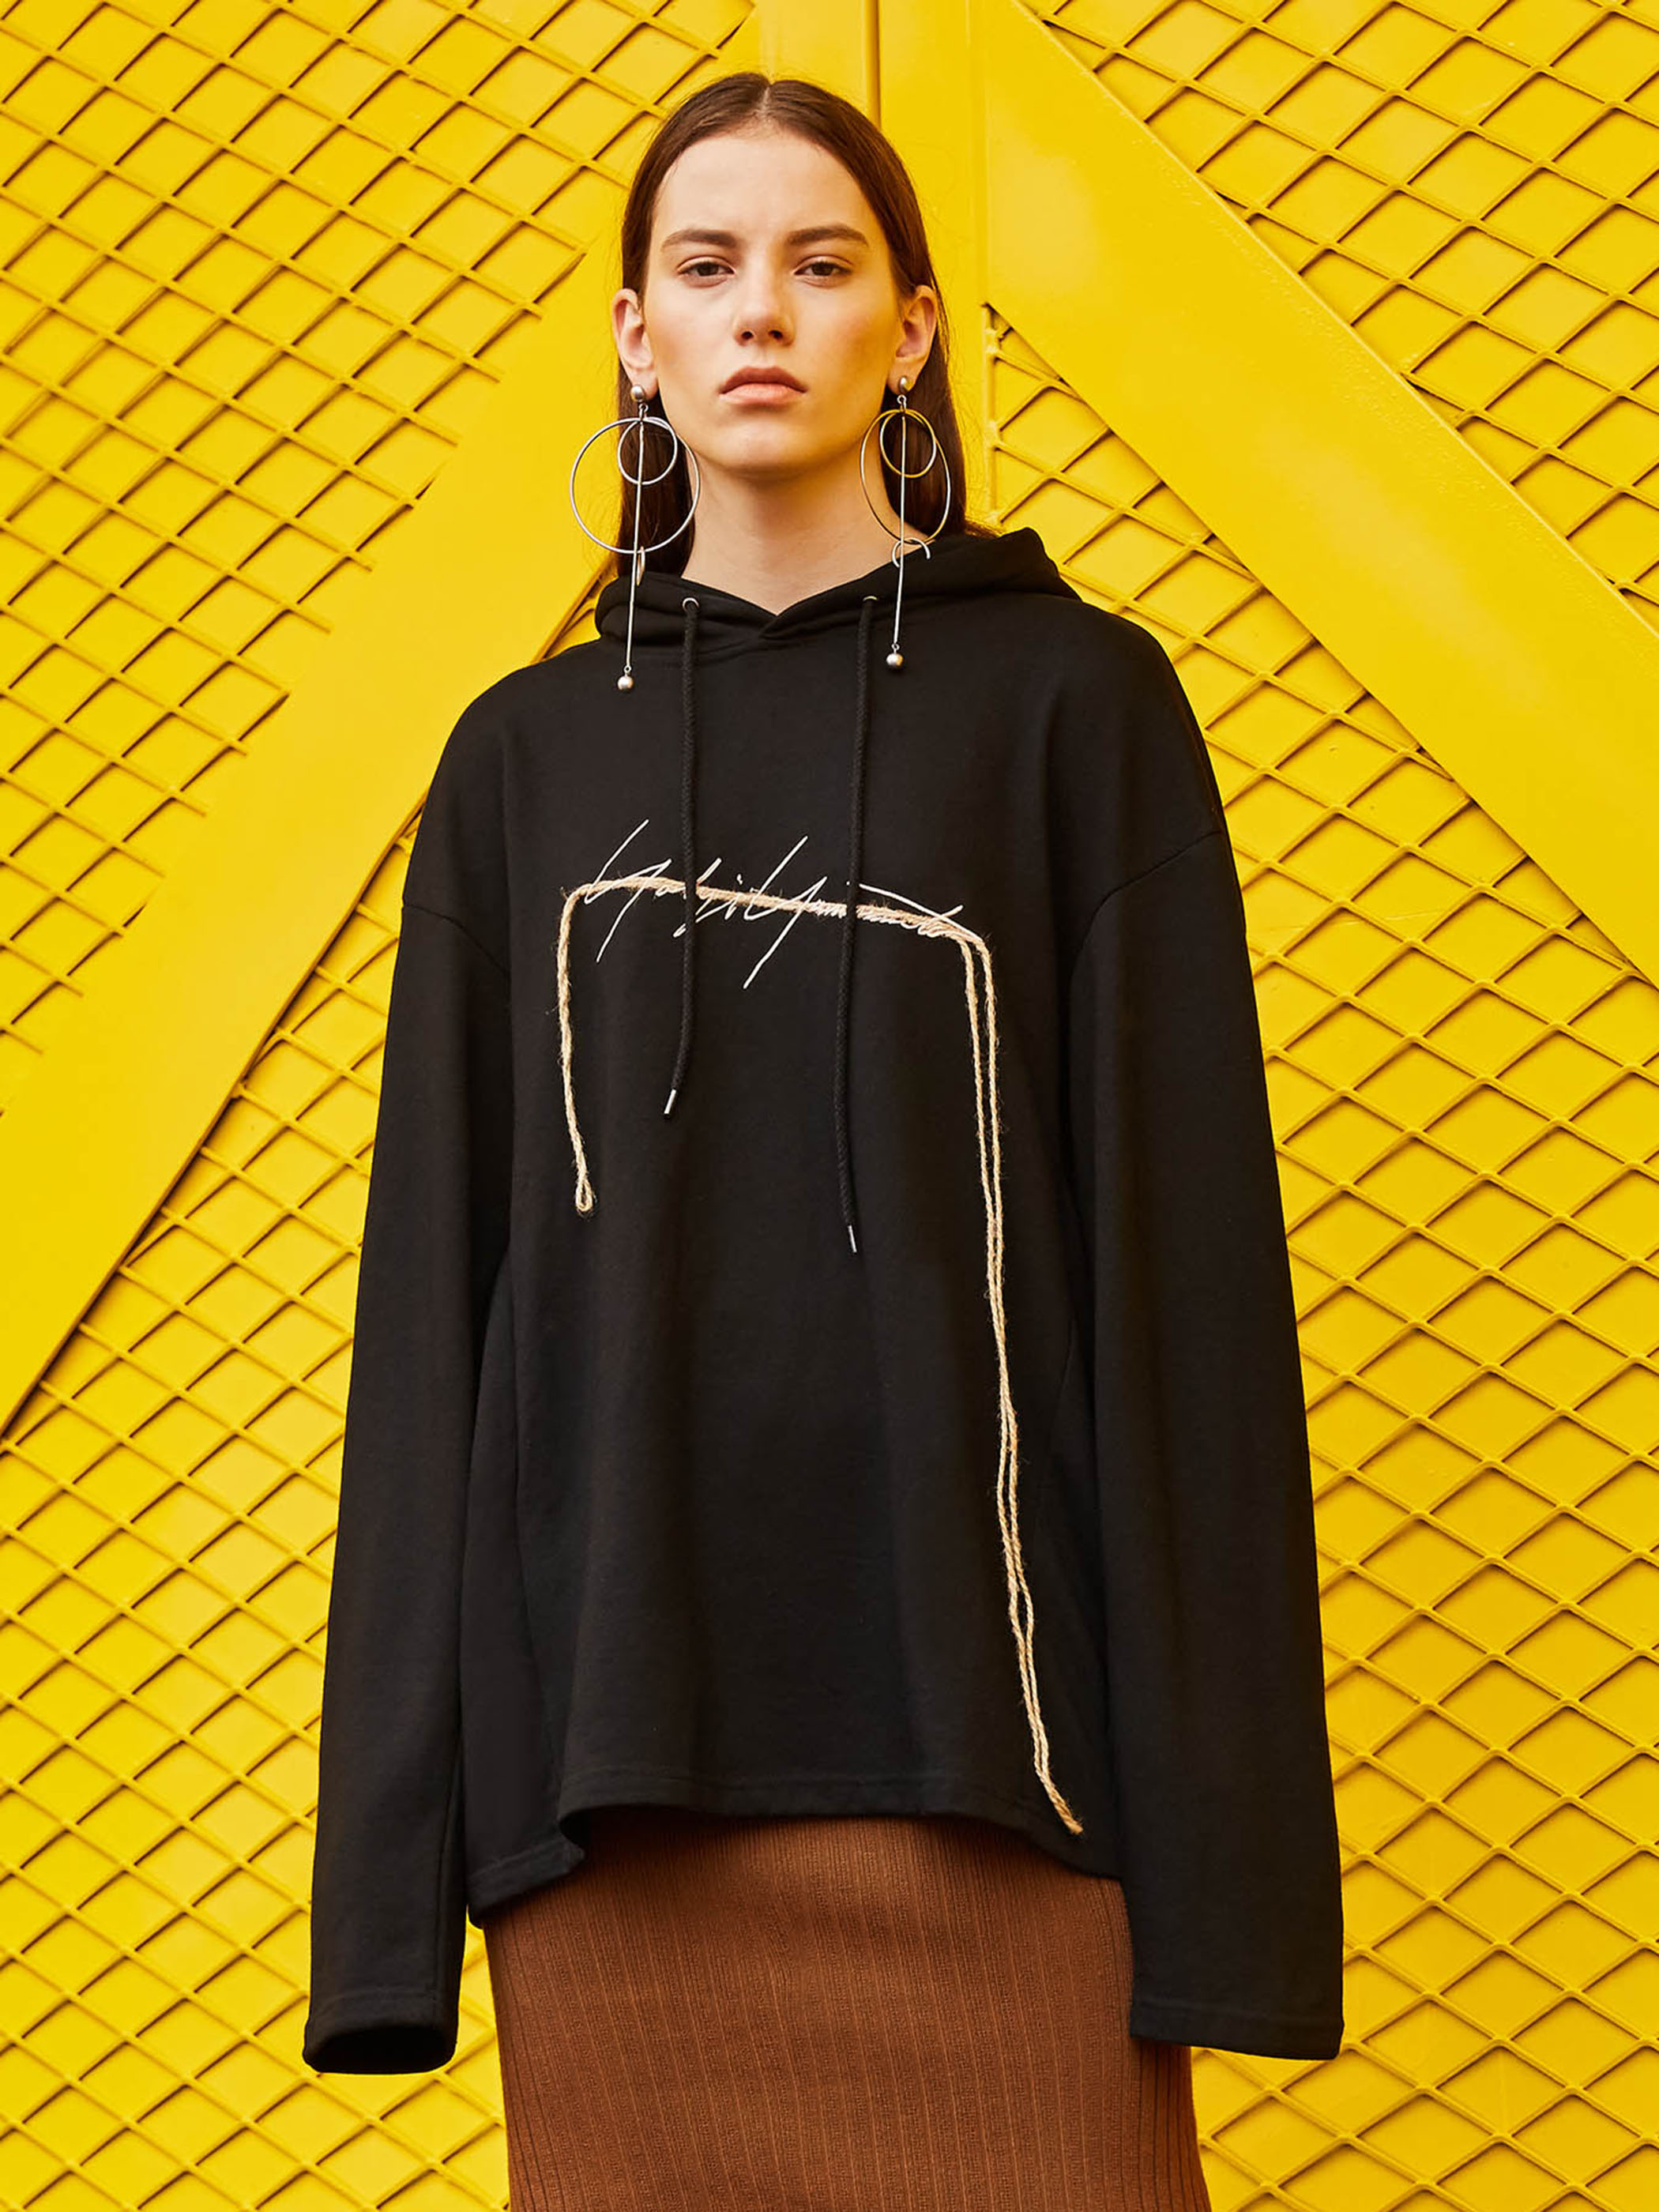 Women's Hoodie 2021 Autumn Drawstring Letter Embroidered Pullover Loose Mid-length Sweatshirt Fashio